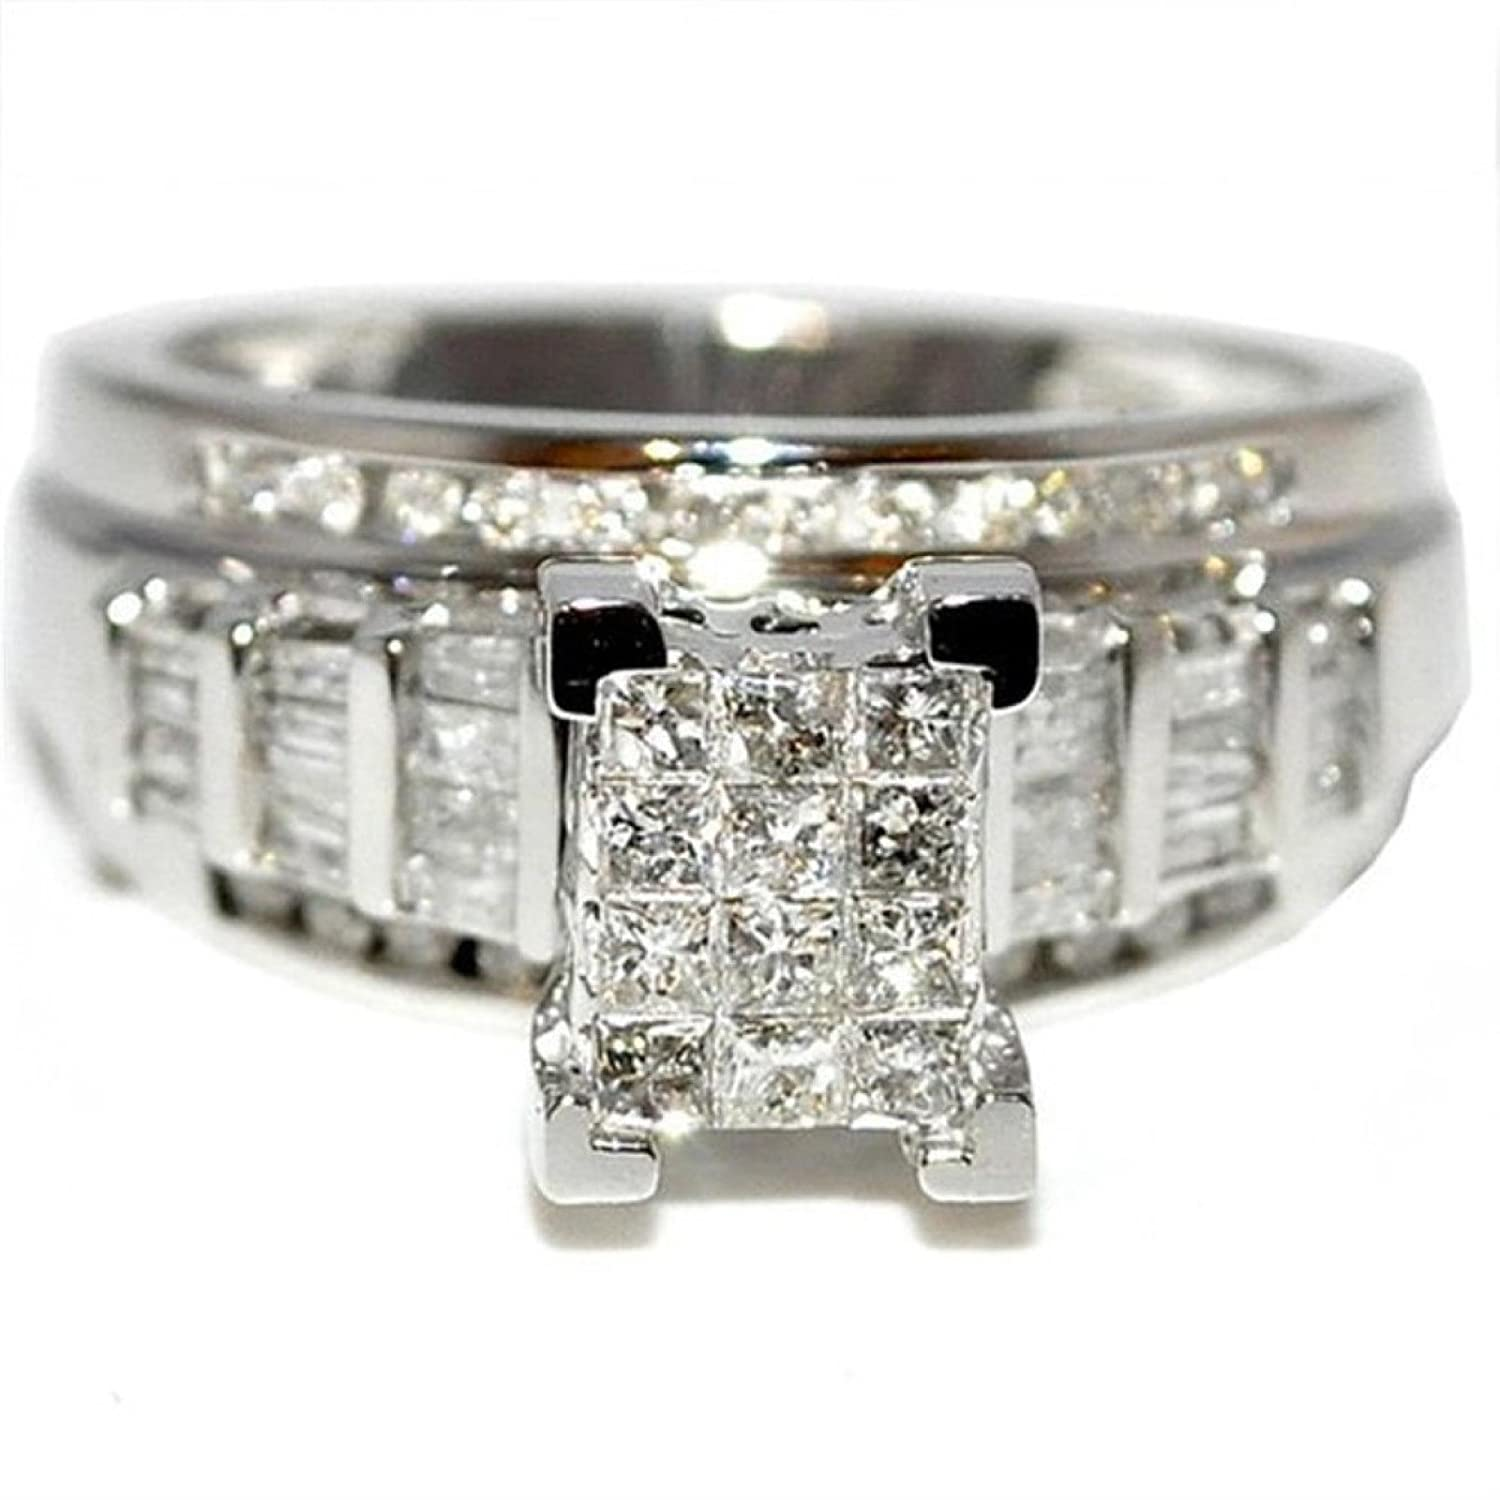 Princess Cut Diamond Wedding Ring 3 in 1 Engagement & Bands White